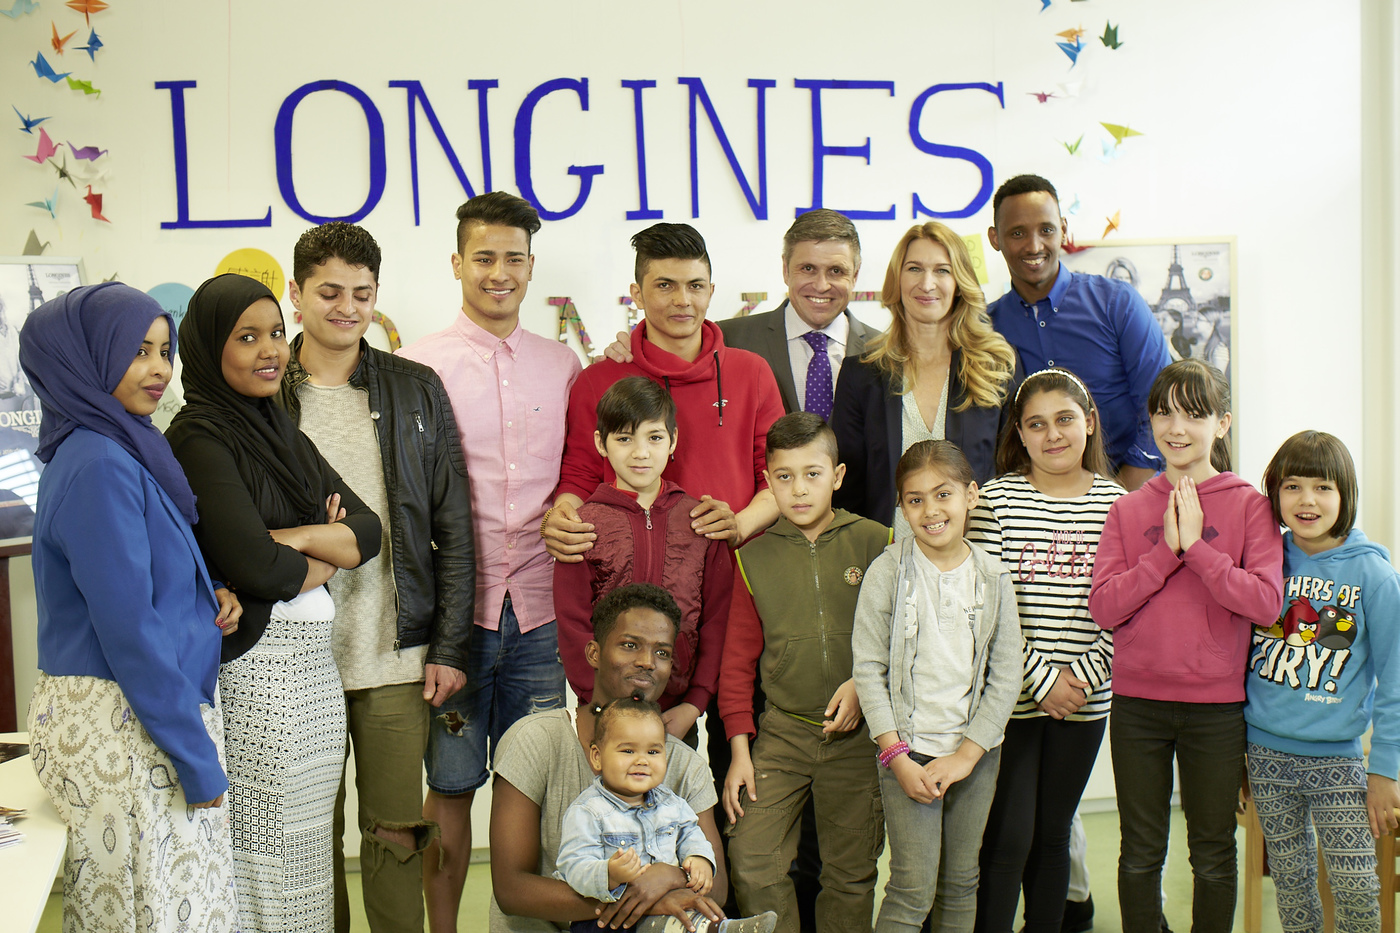 Longines Corporate Event: Children for Tomorrow welcomes Longines to the foundation's headquarters in the presence of Ambassador of Elegance Stefanie Graf 5